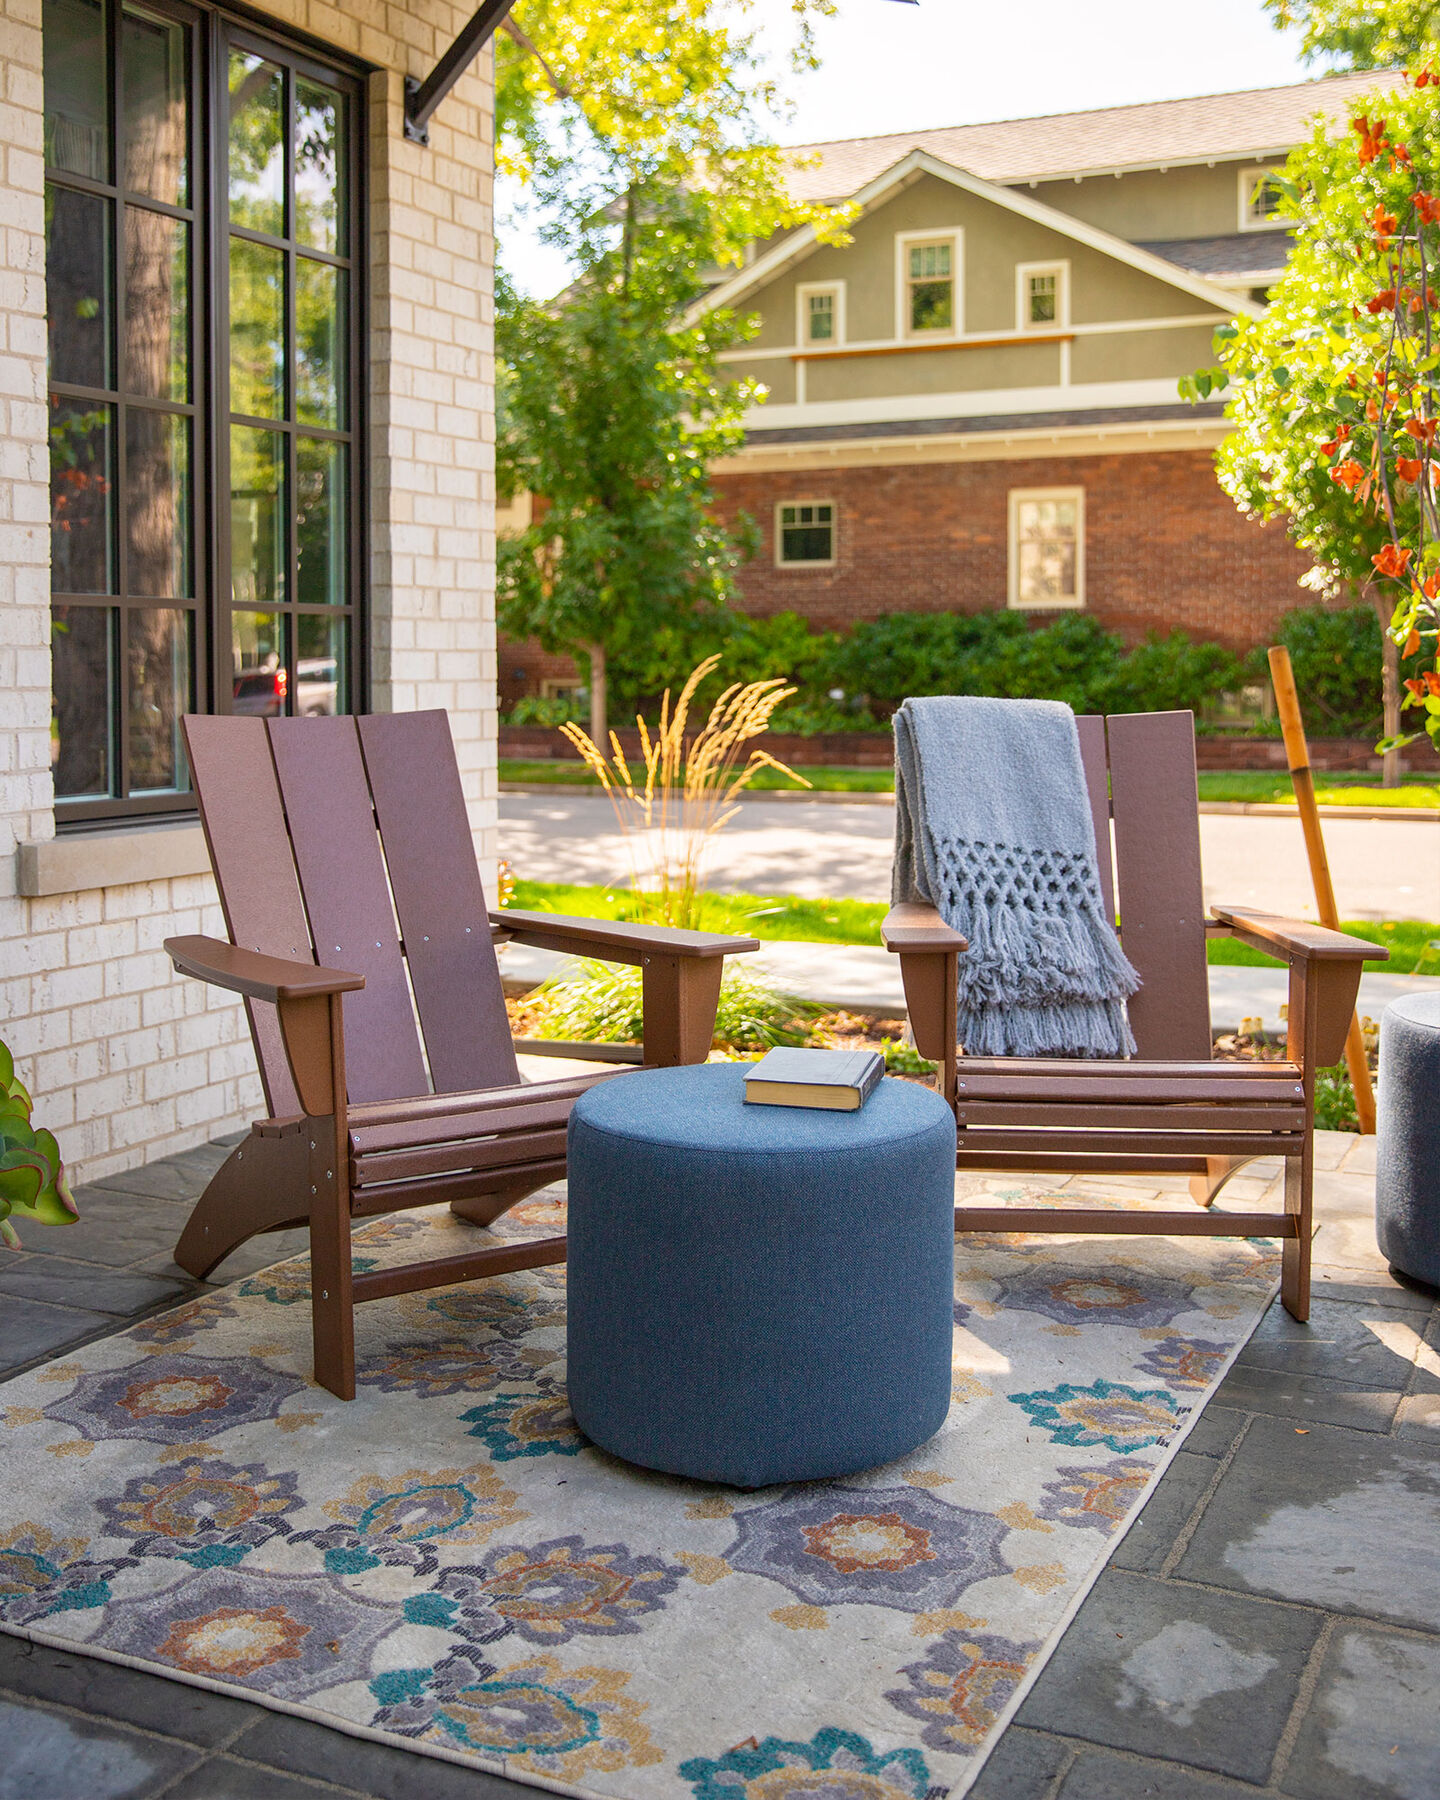 Two brown Adirondack patio chairs made of recycled materials by Polywood accented by a pool stool on an outdoor rug